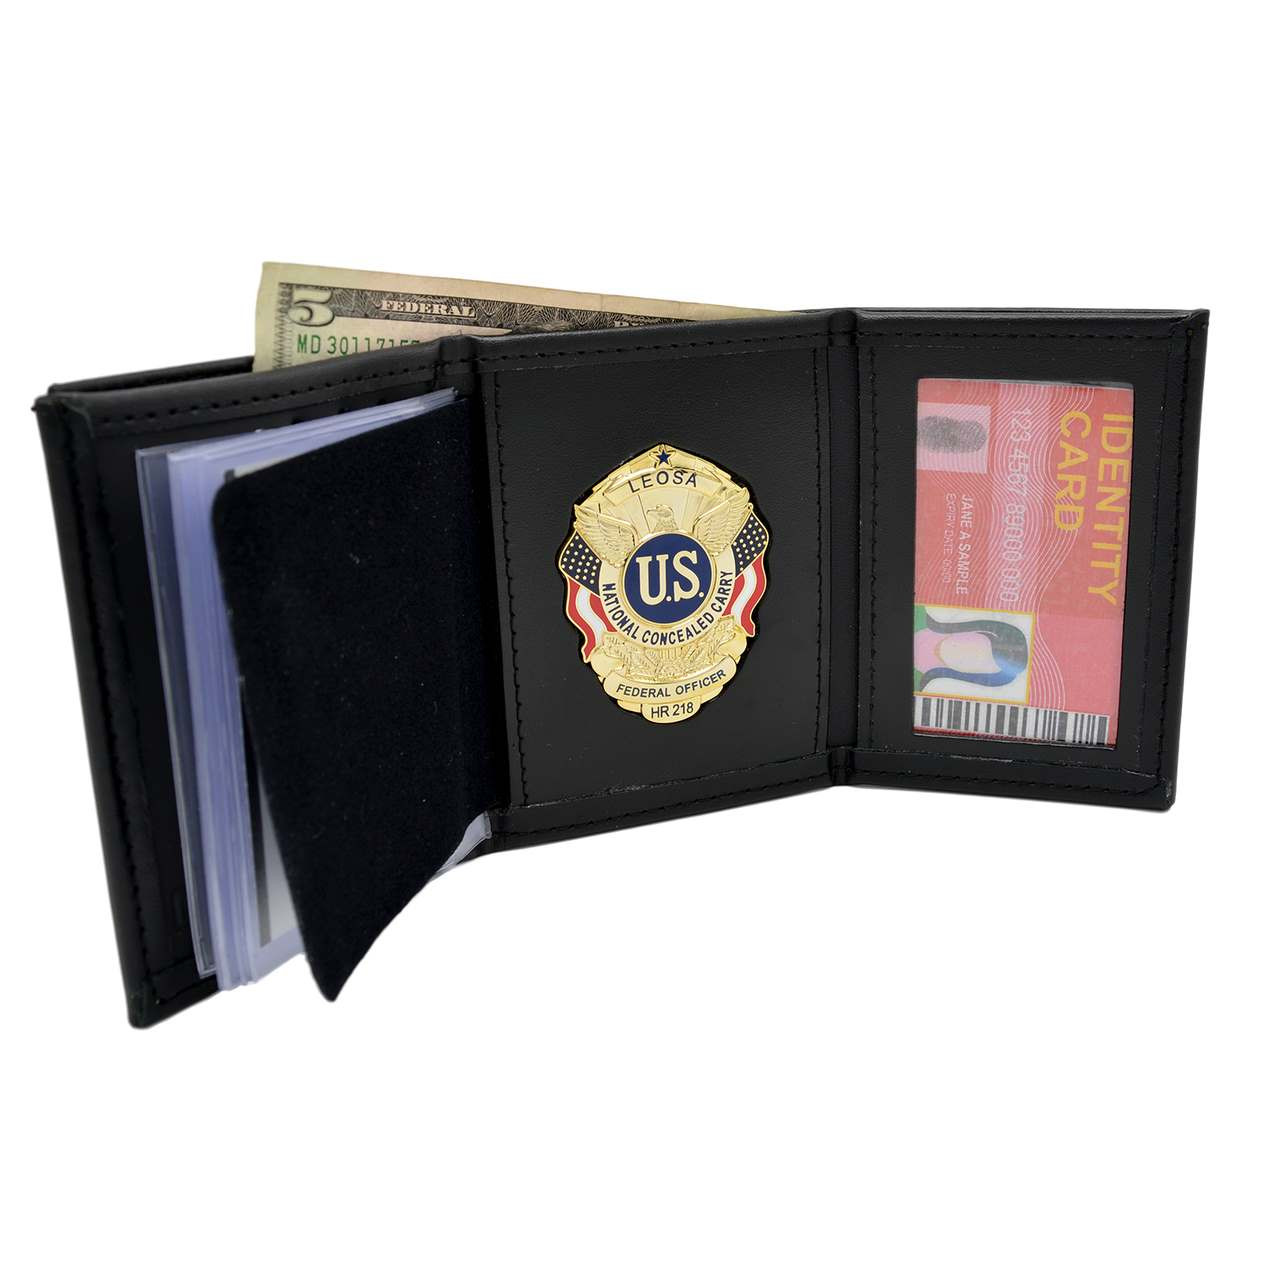 trifold wallet w single id window for hr218 leosa badge